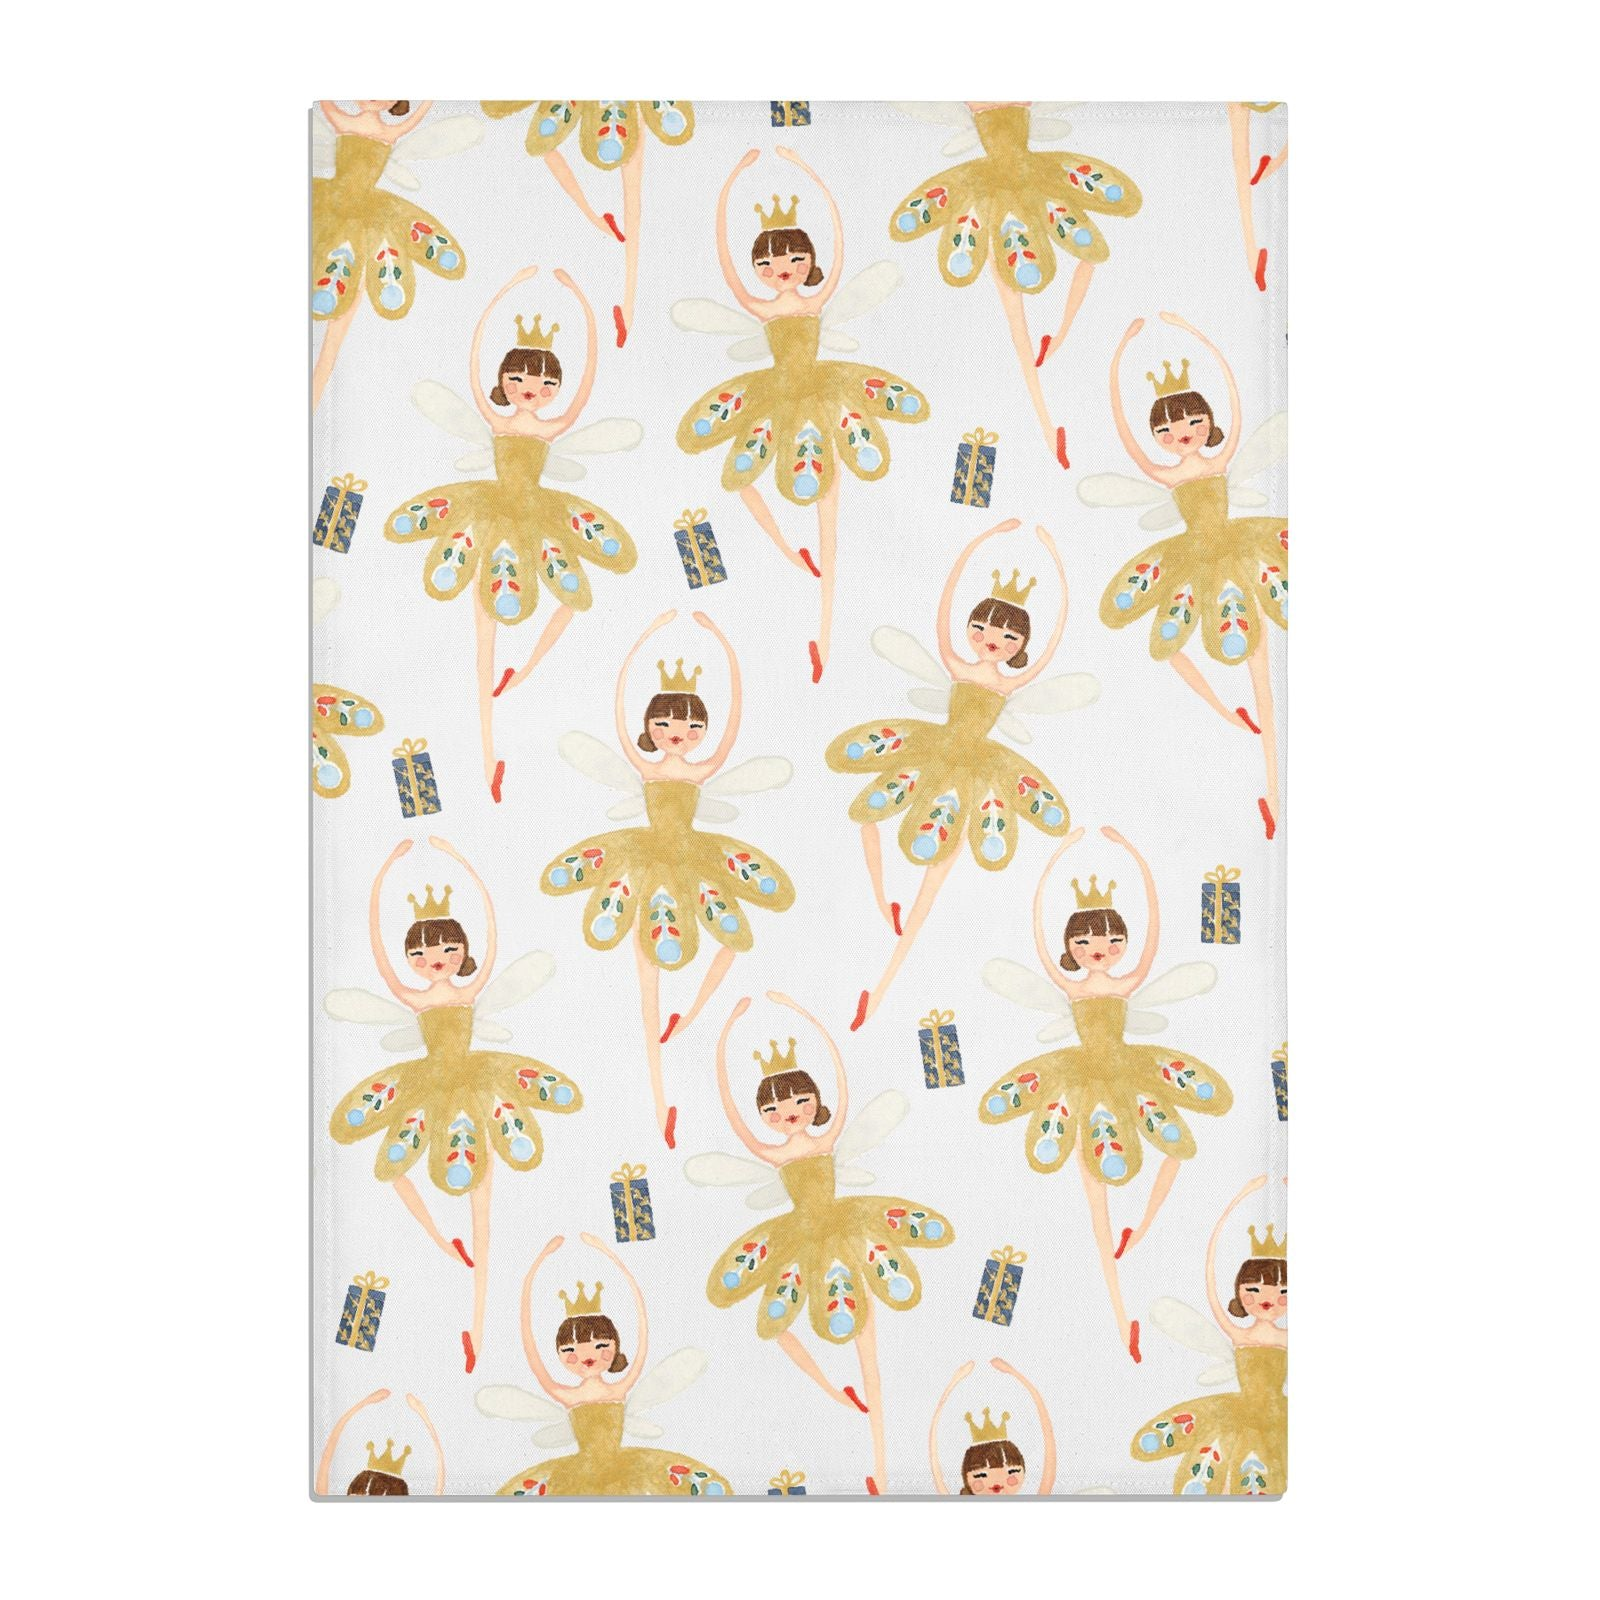 Dancing ballerina princess Cotton Tea Towel